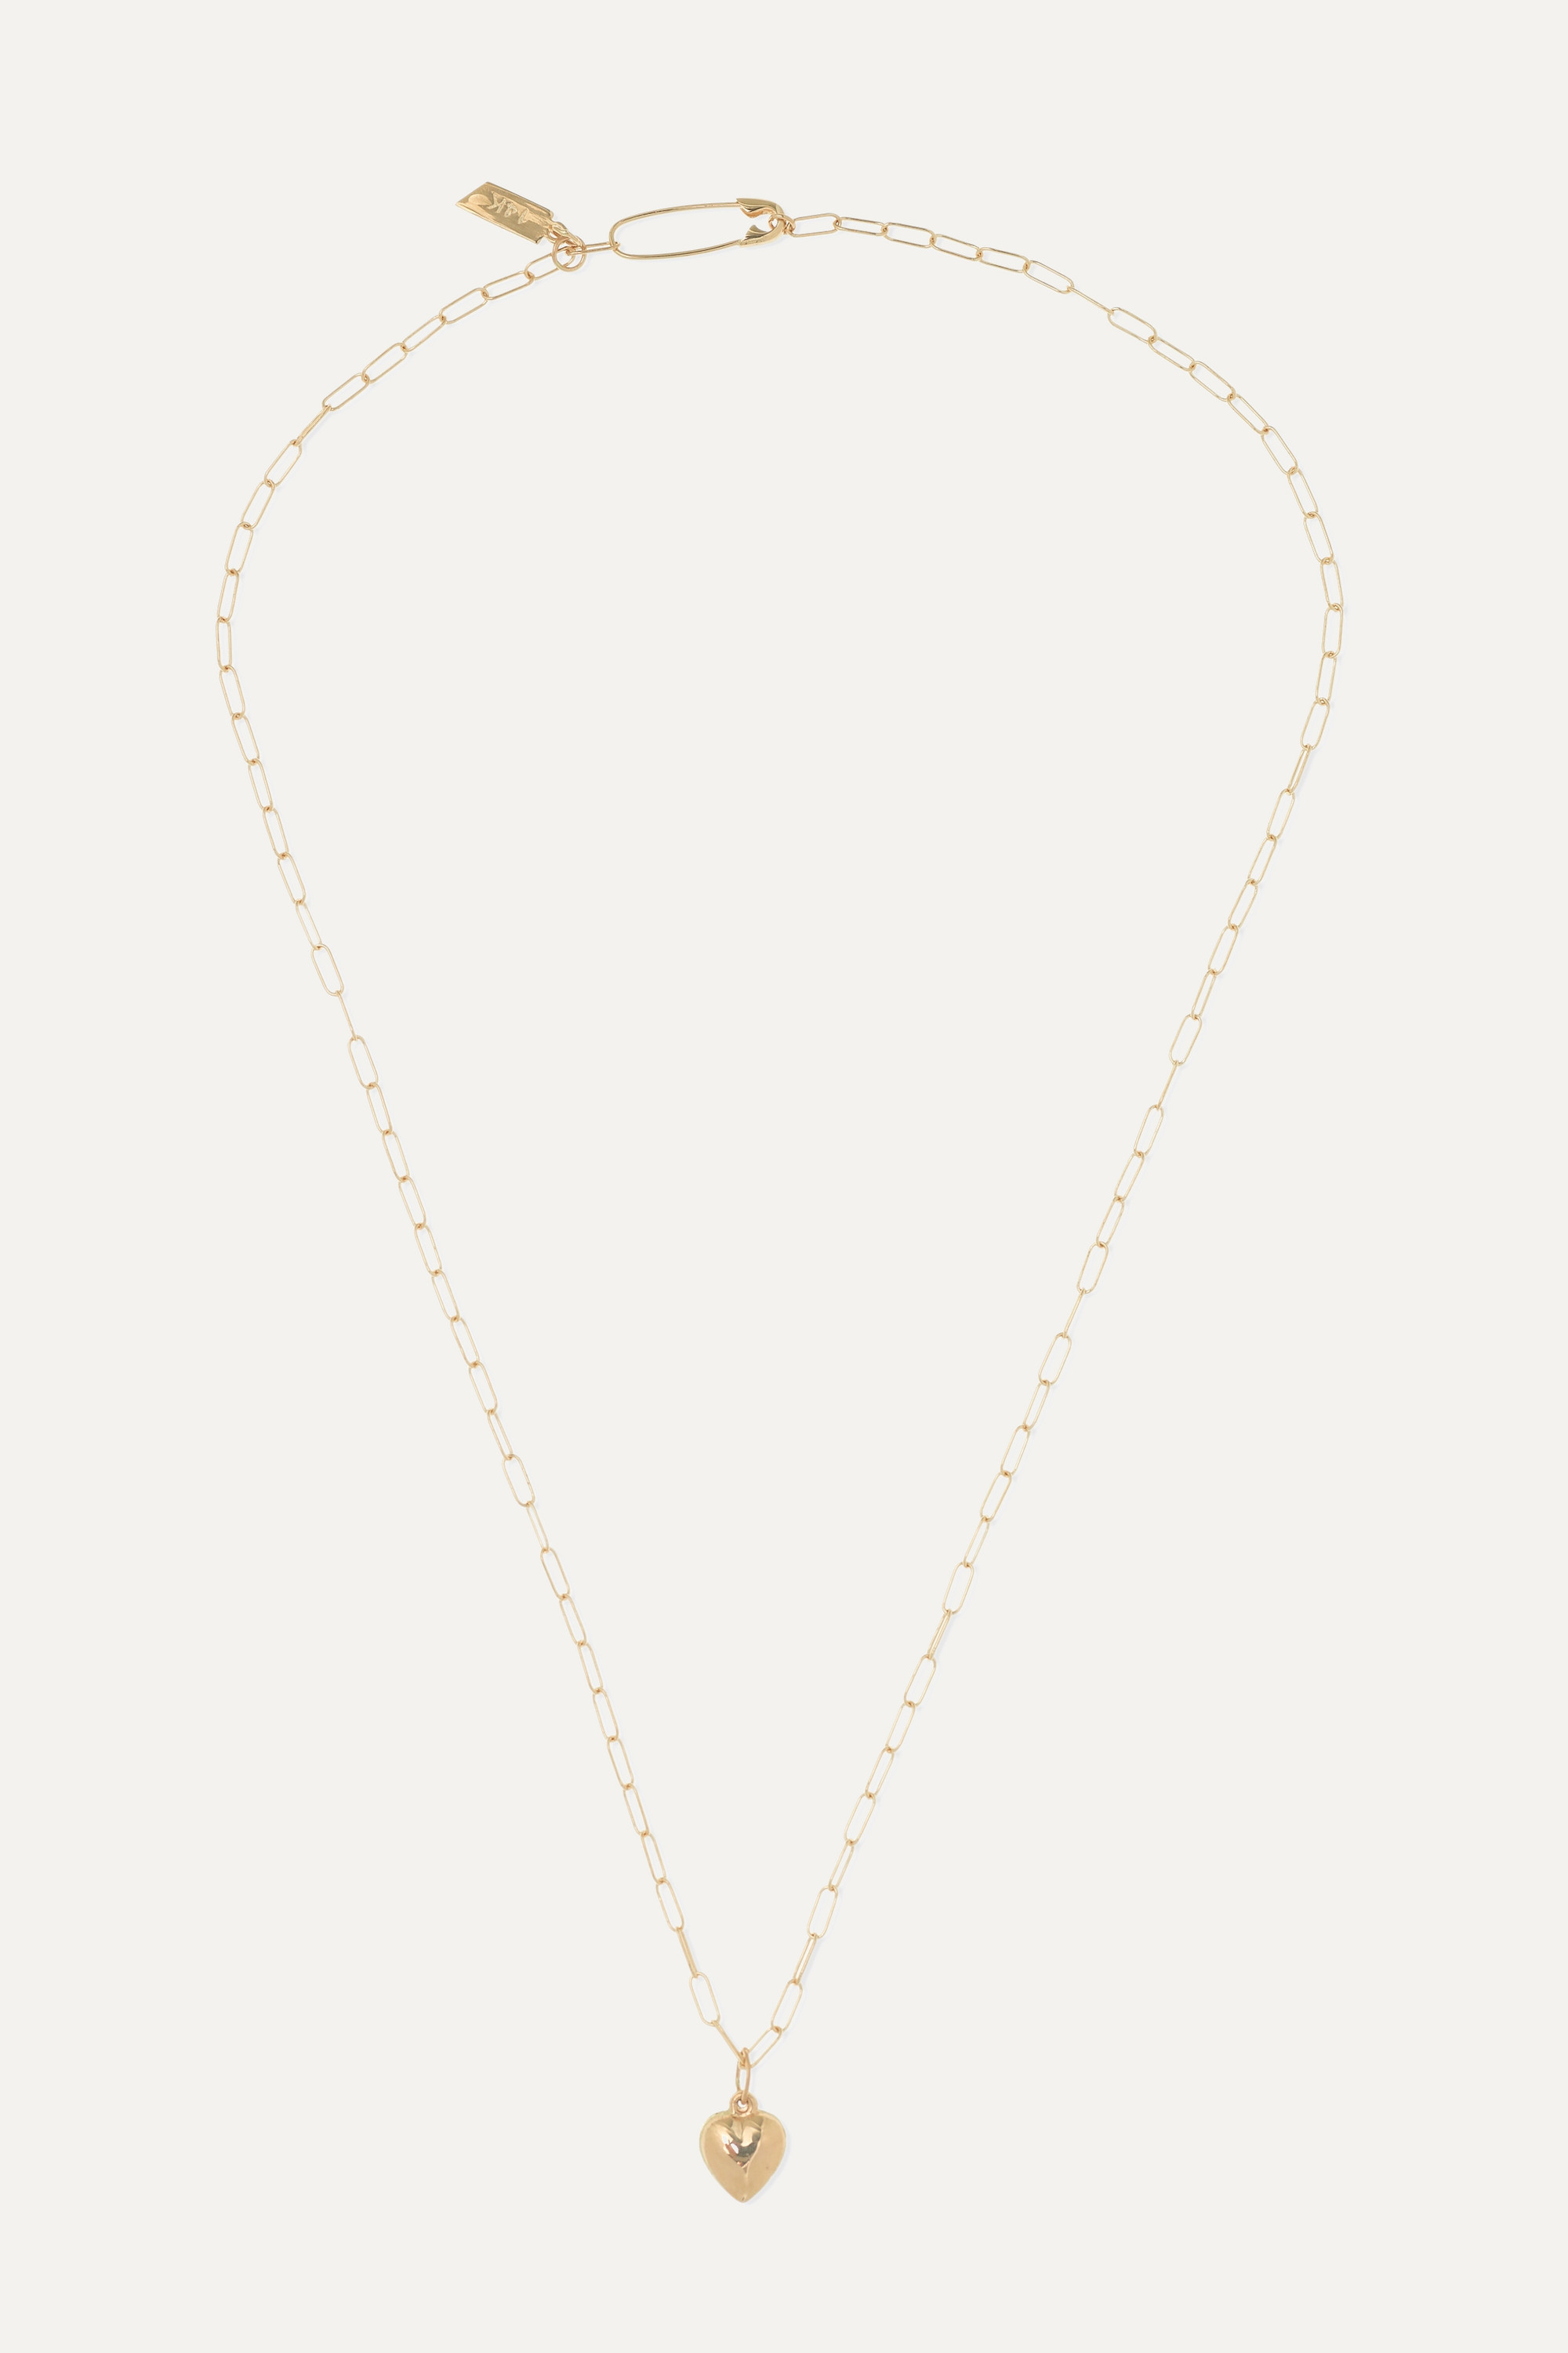 Loren Stewart Catalina 14-karat gold necklace